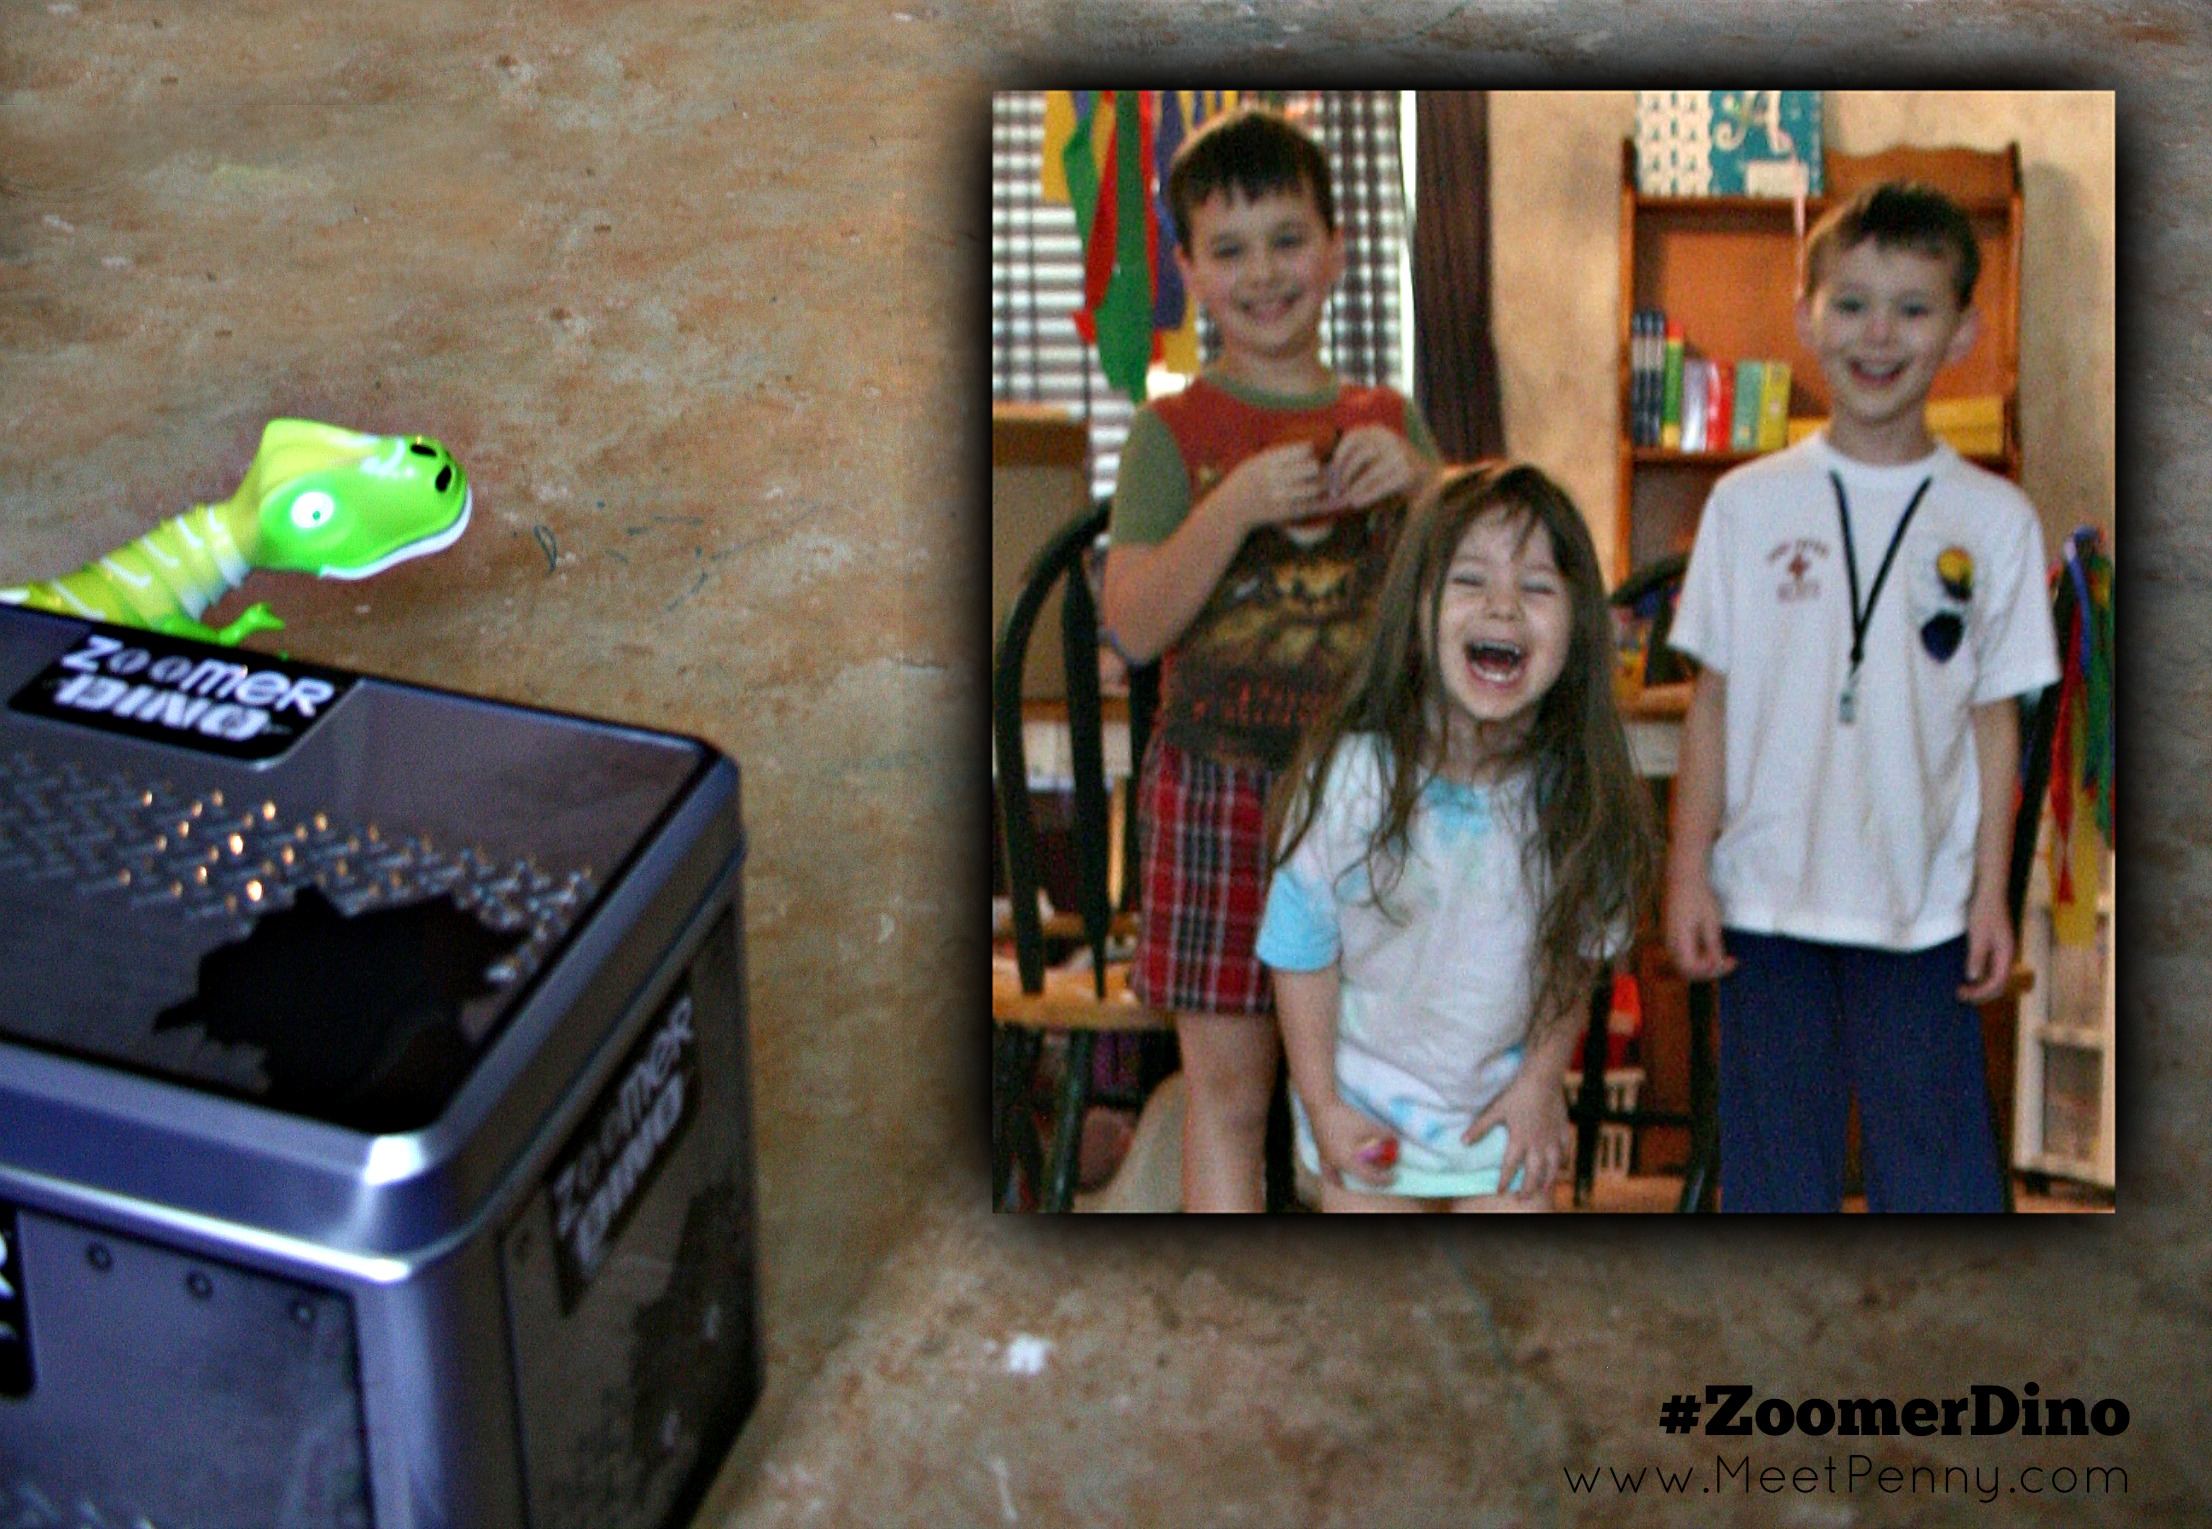 Great gift idea for ages 5 and up. Zoomer Dino by Spin Master is one of the hot toys of the year!